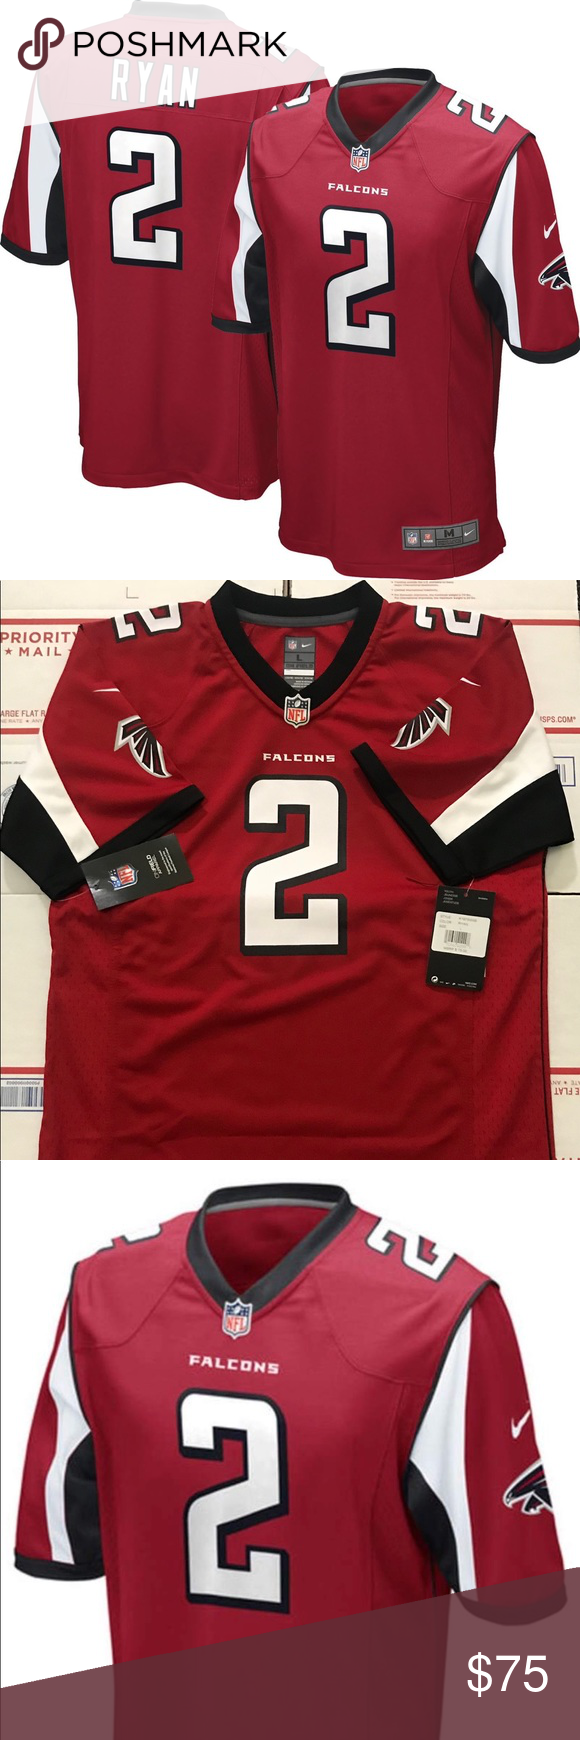 Matt Ryan Atlanta Falcons Nike Jersey Nike Jersey Atlanta Falcons Nike Nike Shirts